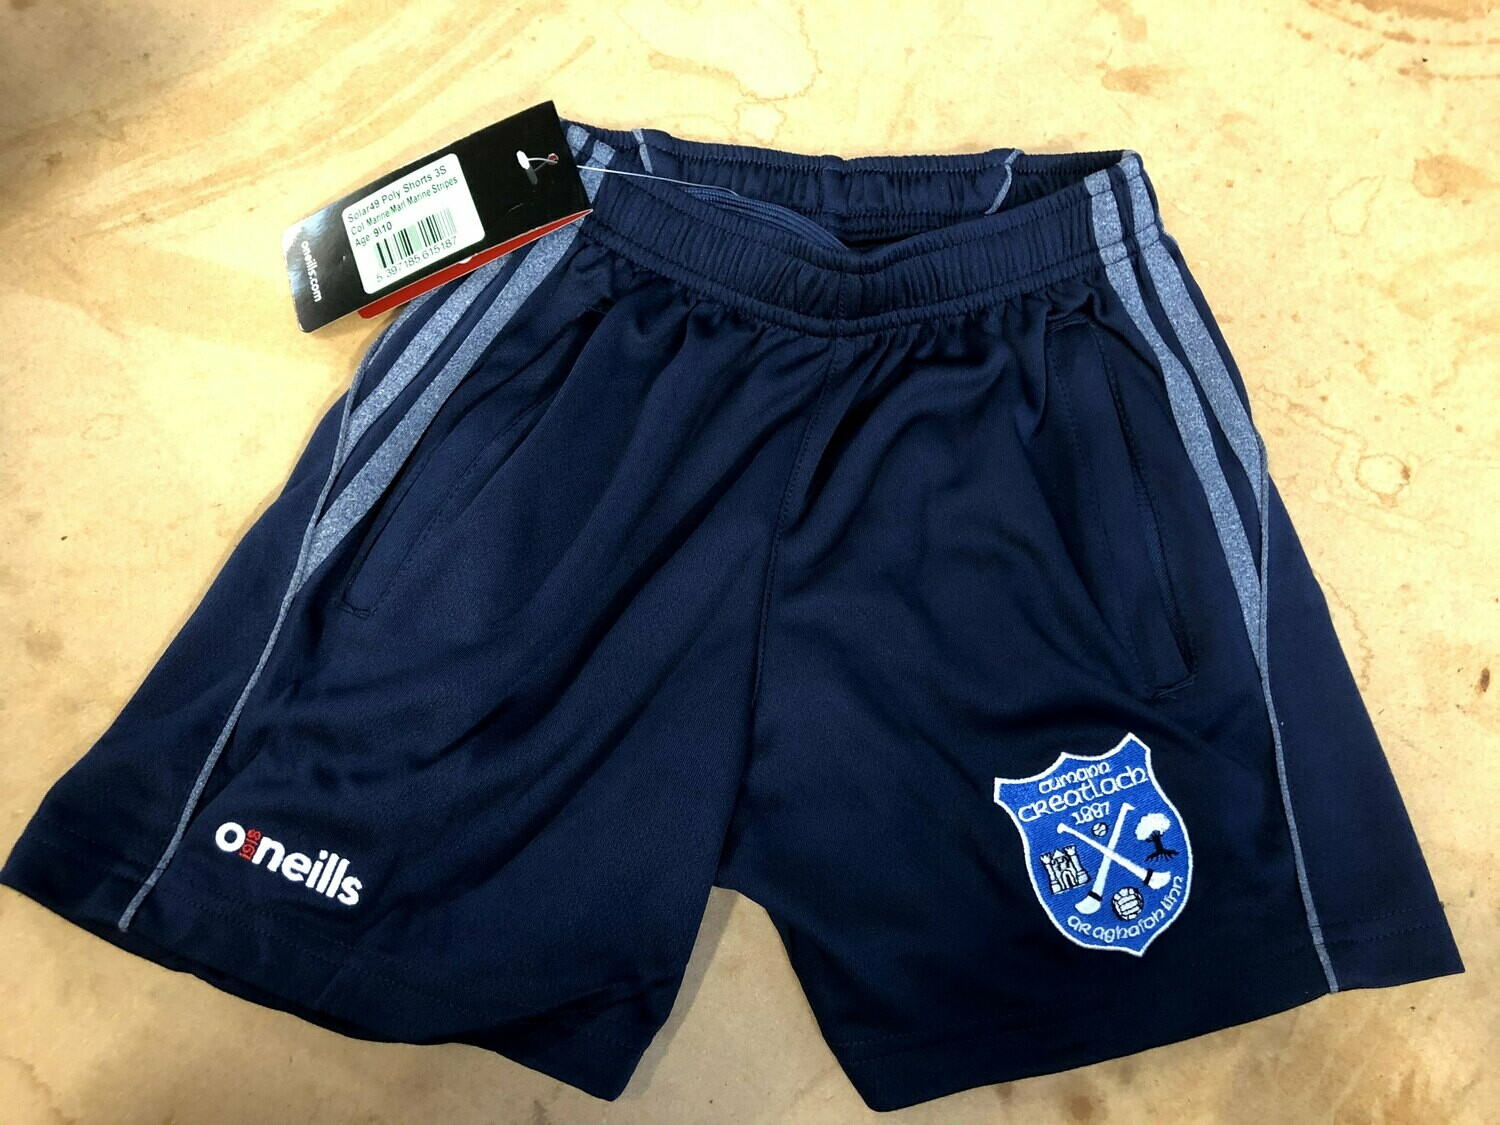 O'Neill's Solar Casual wear shorts